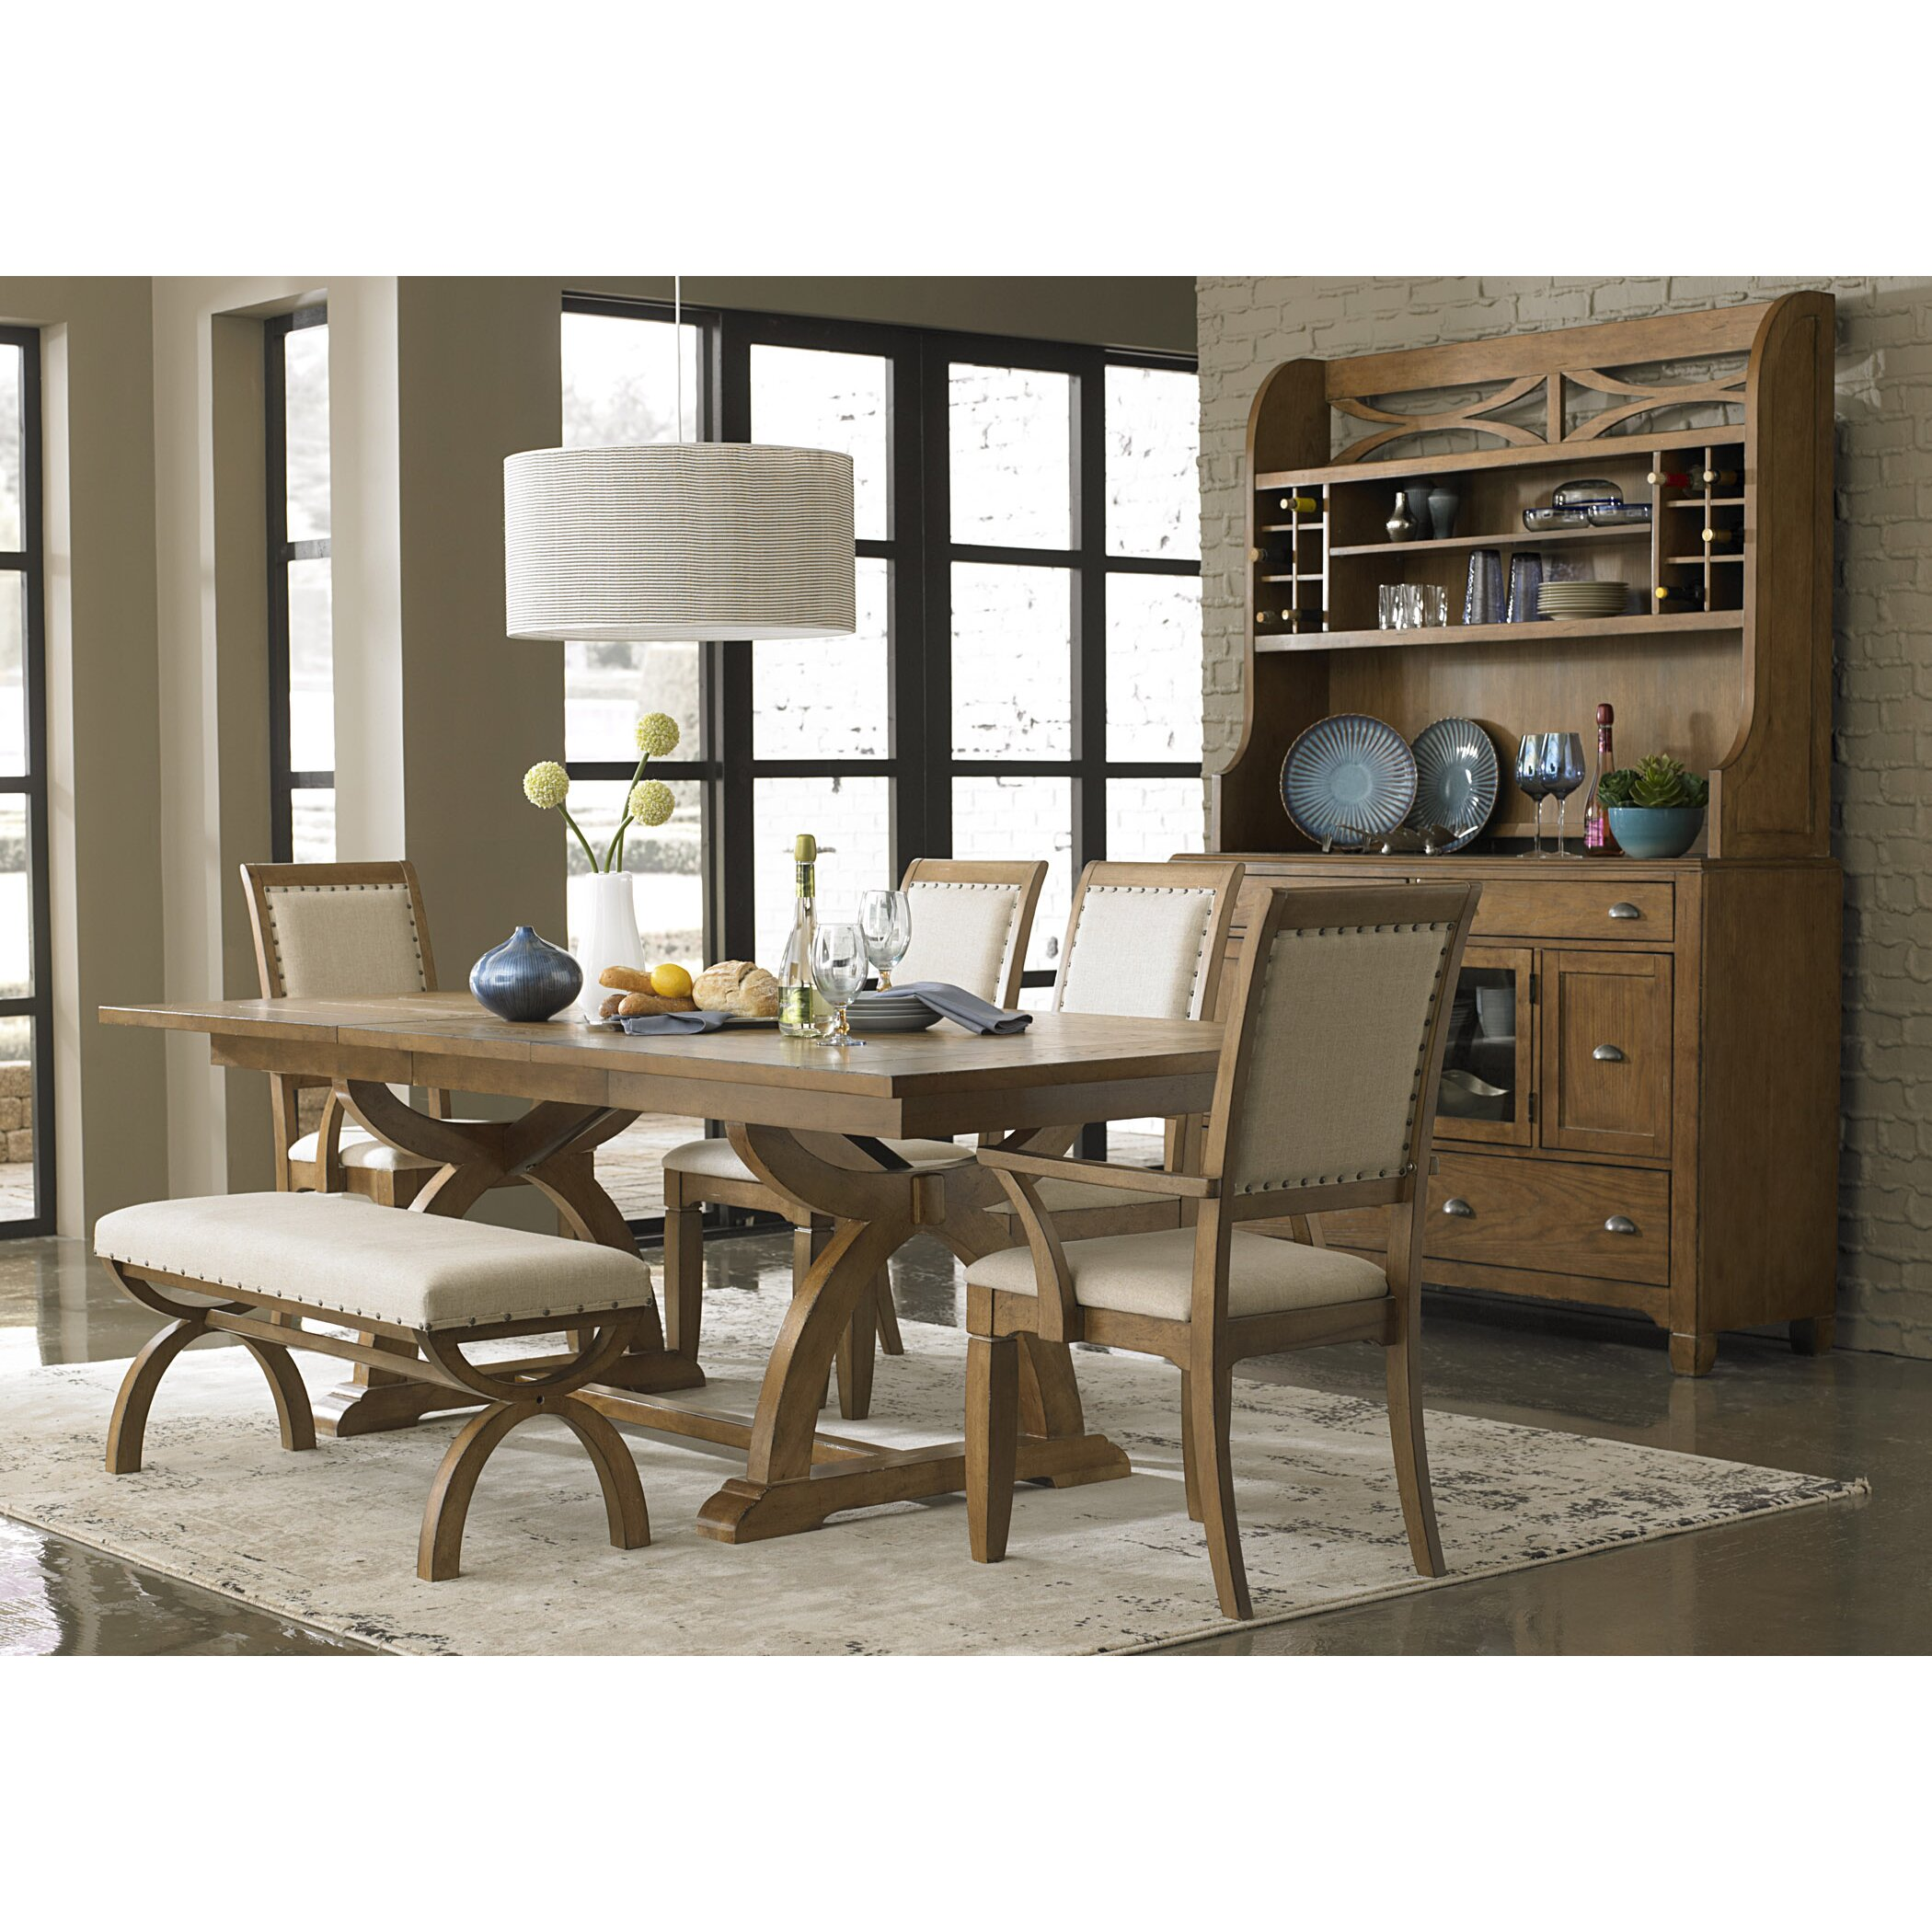 Napa Gathering Collection Liberty Furniture Town And Country Piece Dining Set